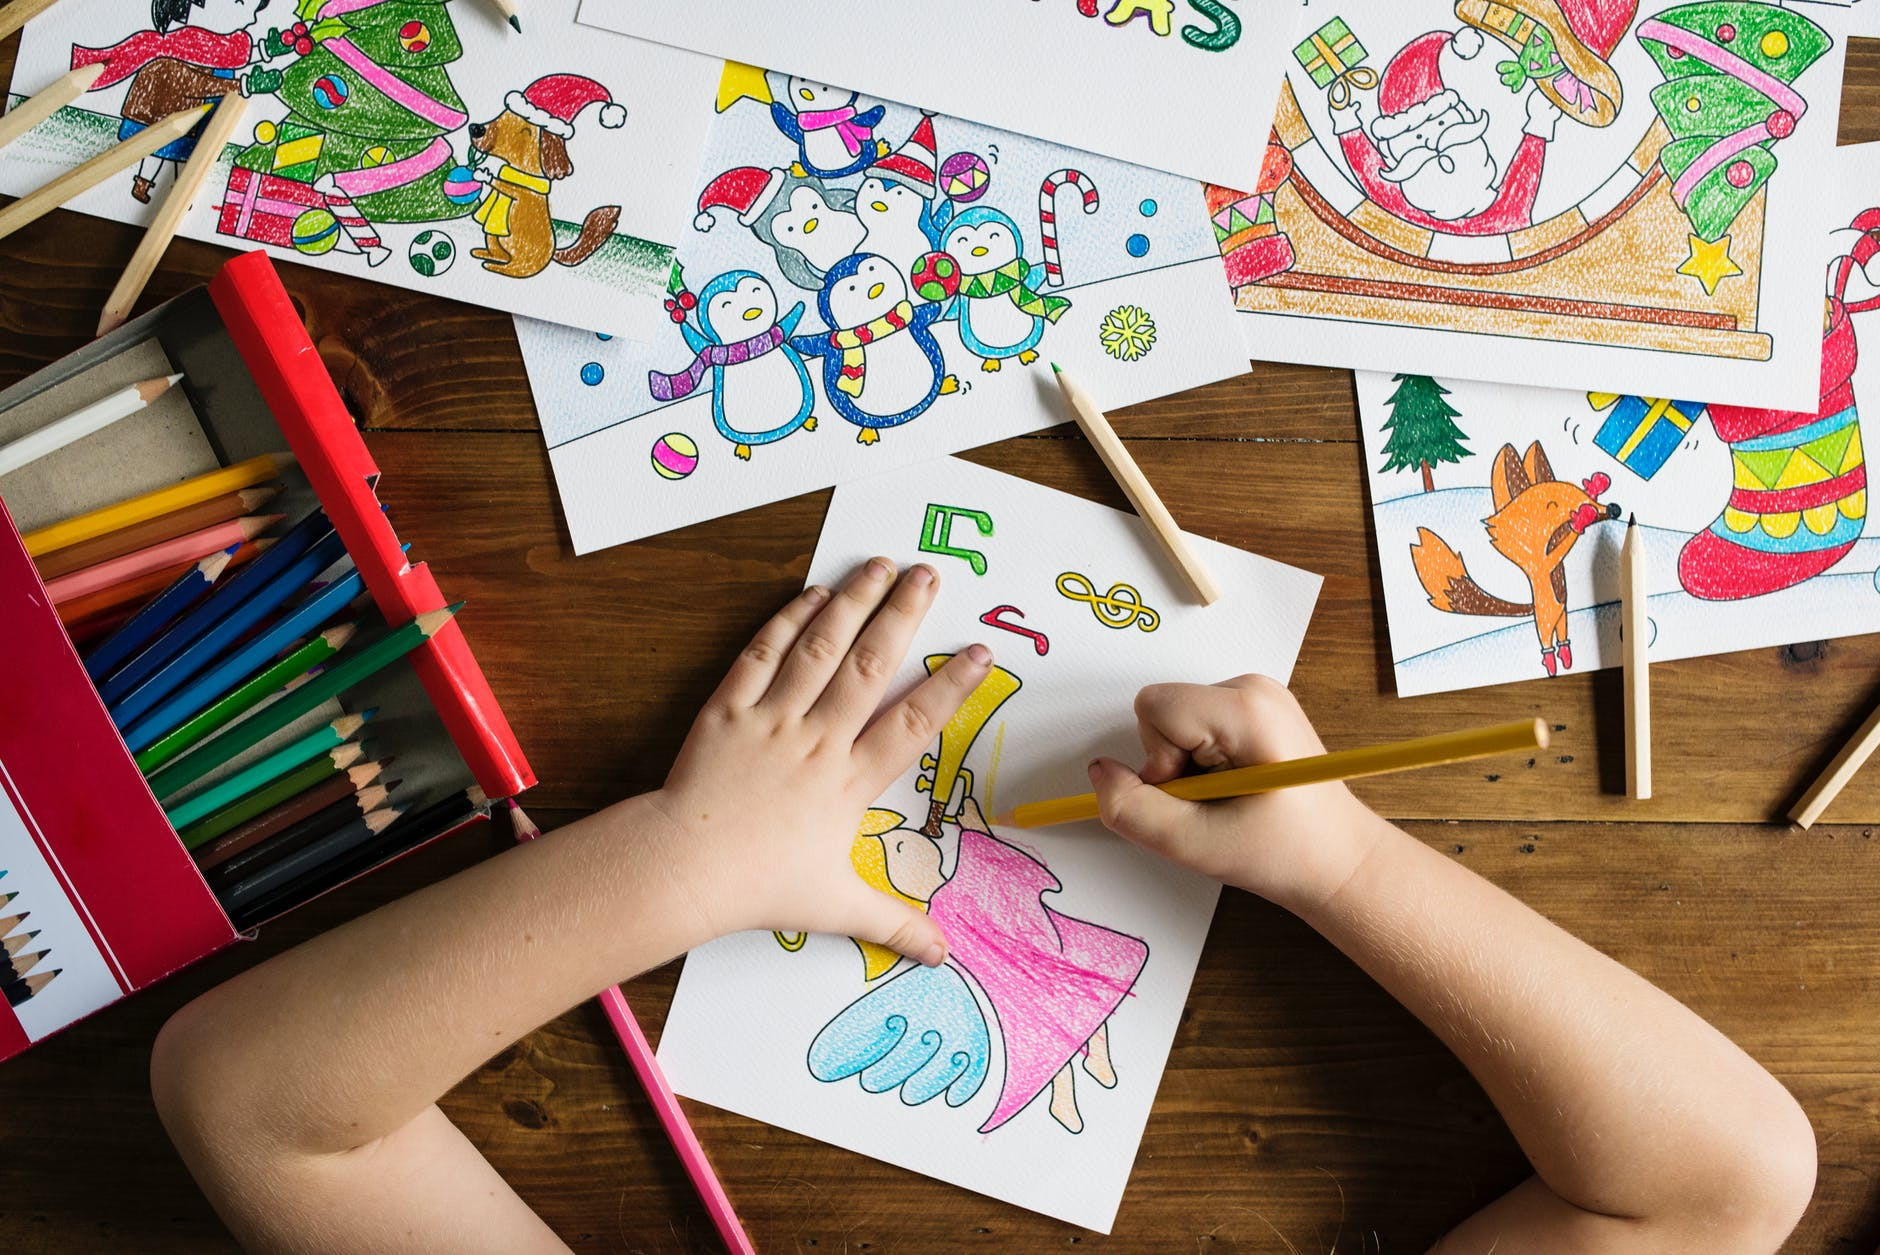 """Photo by rawpixel.com on <a href=""""https://www.pexels.com/photo/top-angle-photo-of-child-holding-pencil-while-drawing-female-angel-playing-wind-instrument-707193/"""" rel=""""nofollow"""">Pexels.com</a>"""